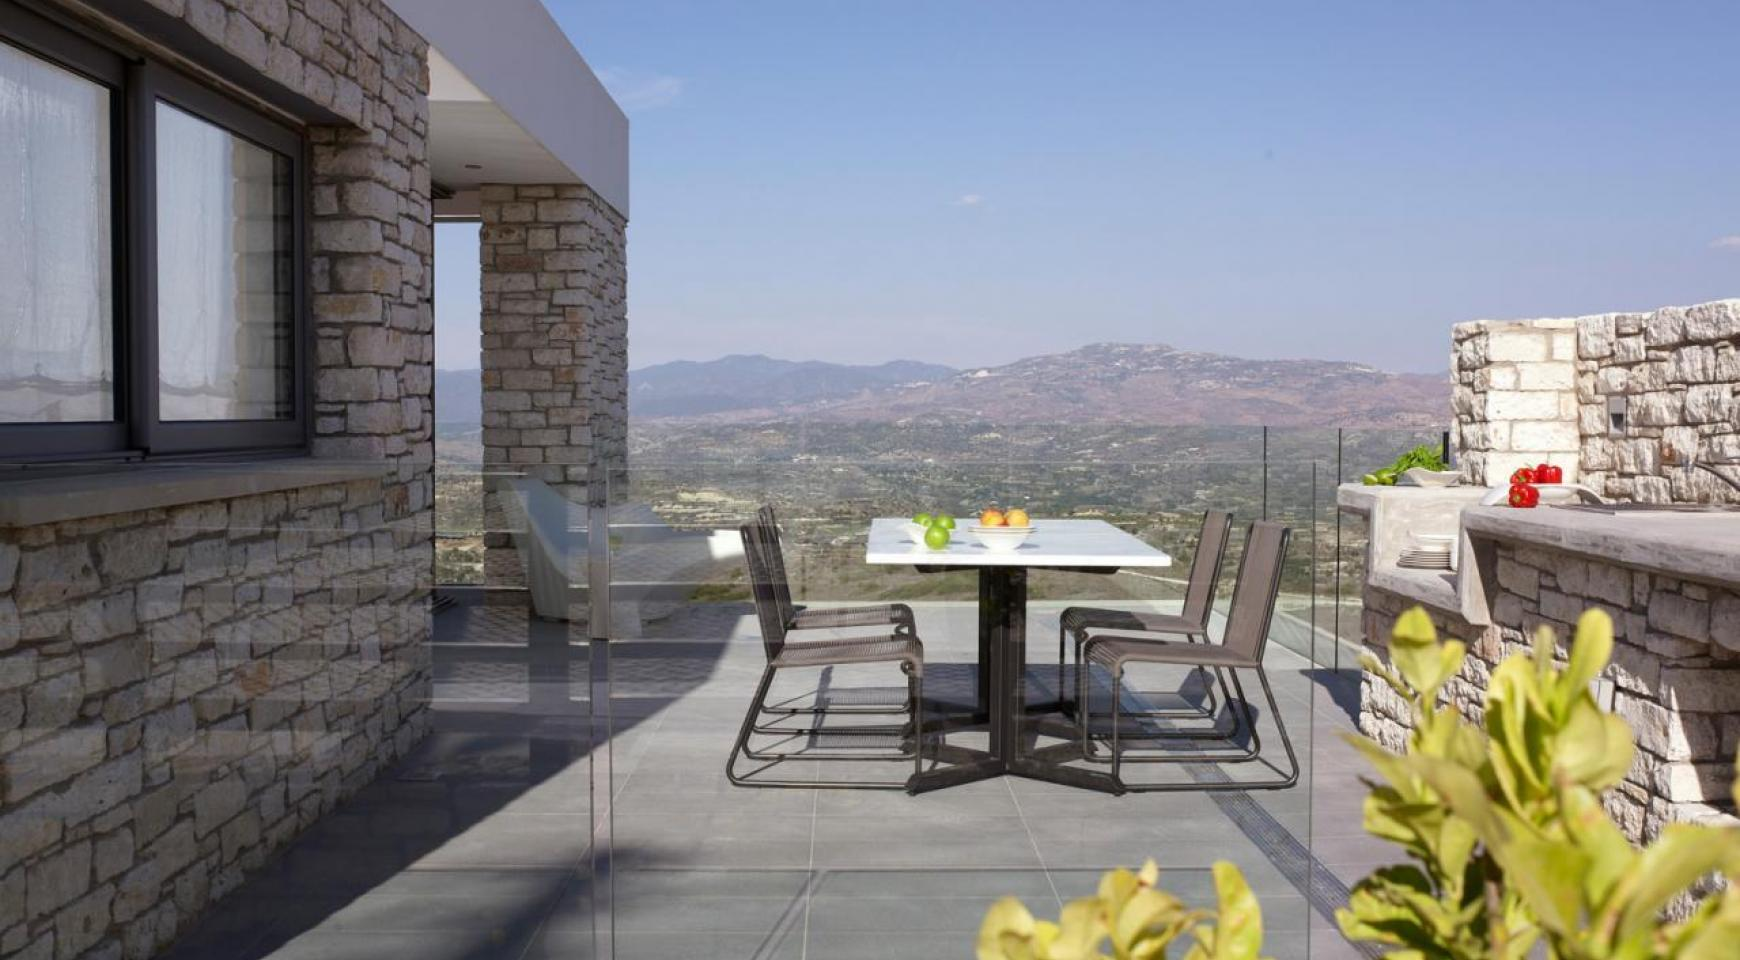 Golf Property - Exclusive 3 Bedroom Villa with Stunning Views - 31